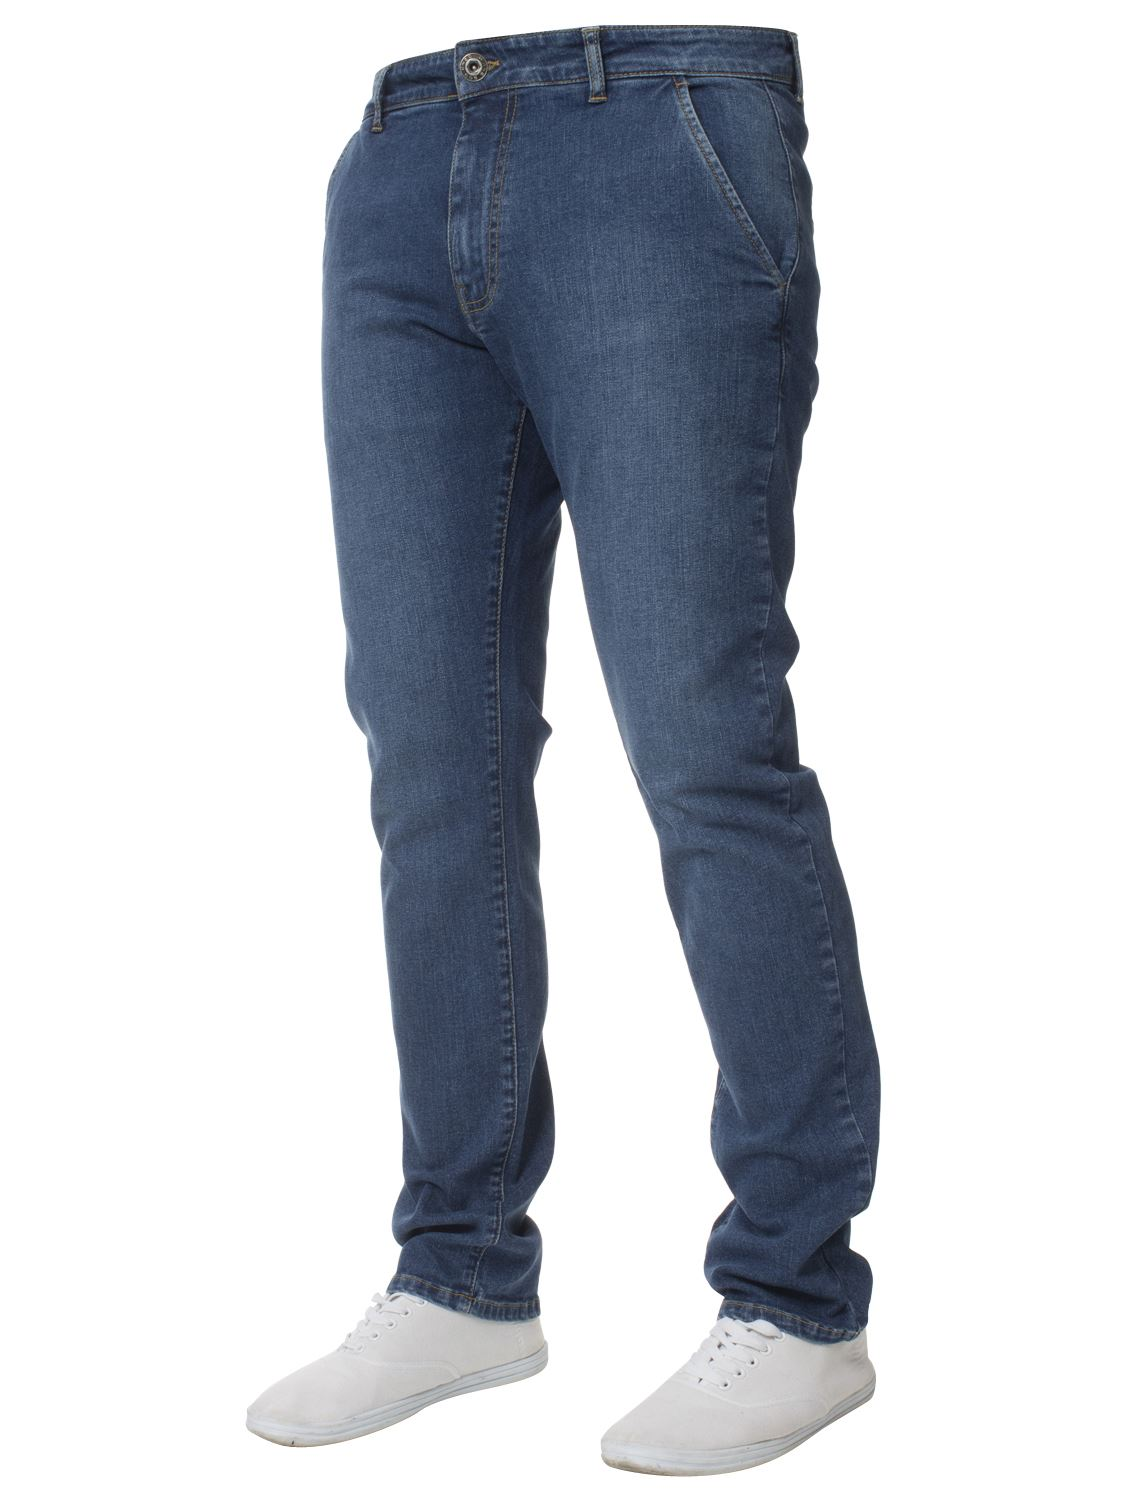 New-Mens-Enzo-Jeans-Denim-Chinos-Skinny-Slim-Fit-Super-Stretch-Trousers-Pants thumbnail 3